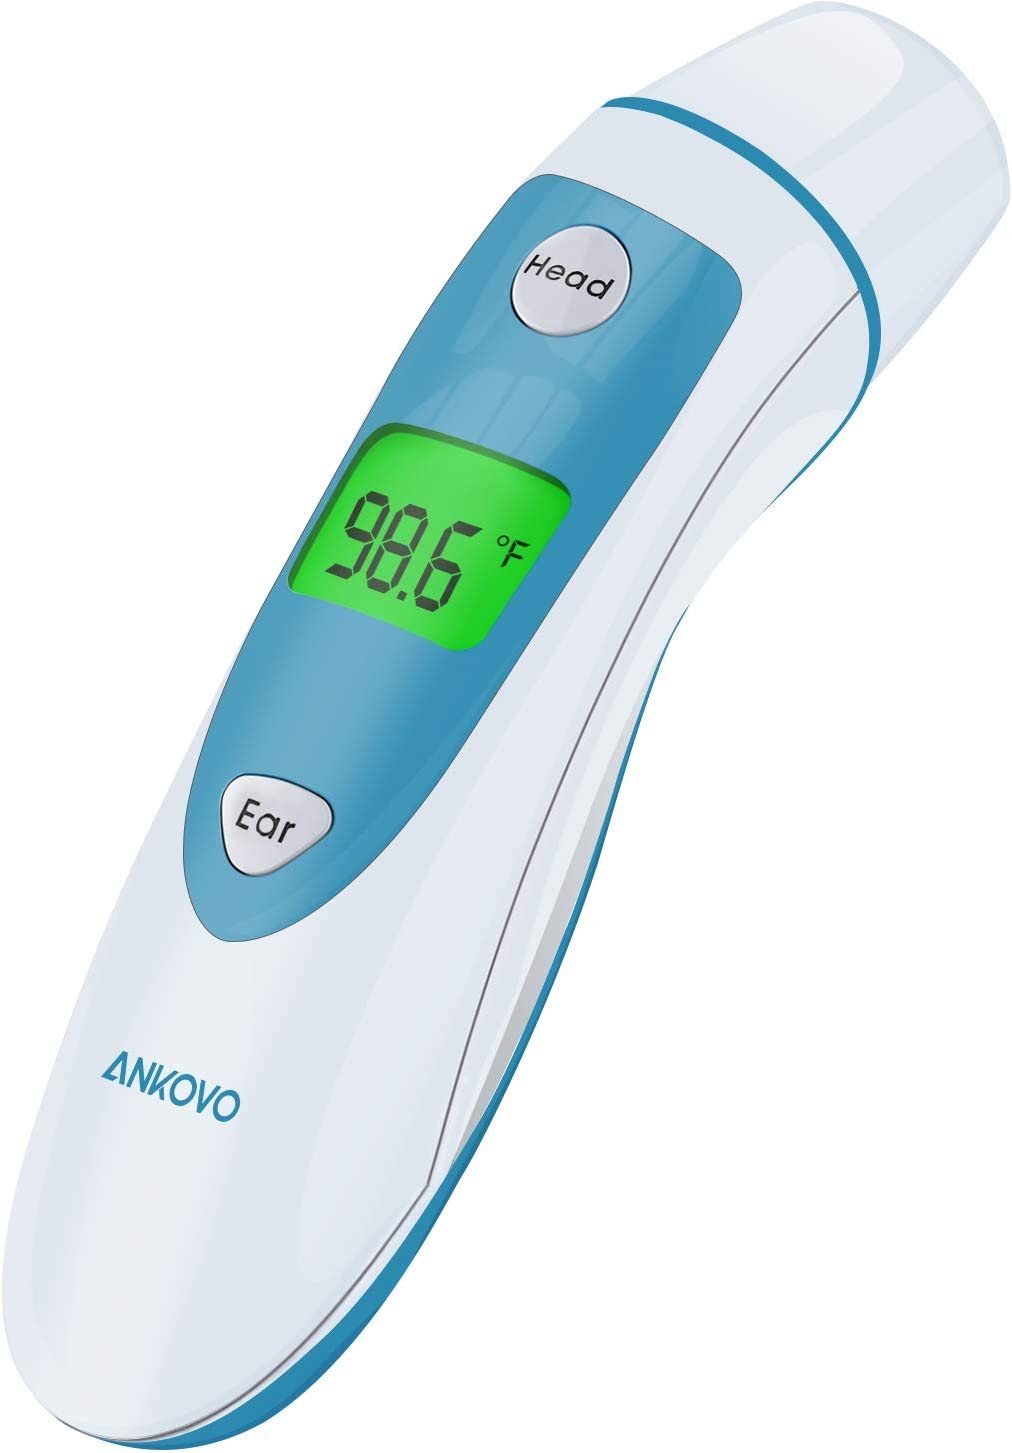 ANKOVO Thermometer for Fever Digital Medical Infrared Forehead and Ear Thermometer for Baby, Kids and Adults with Fever Indicator: Health & Personal Care